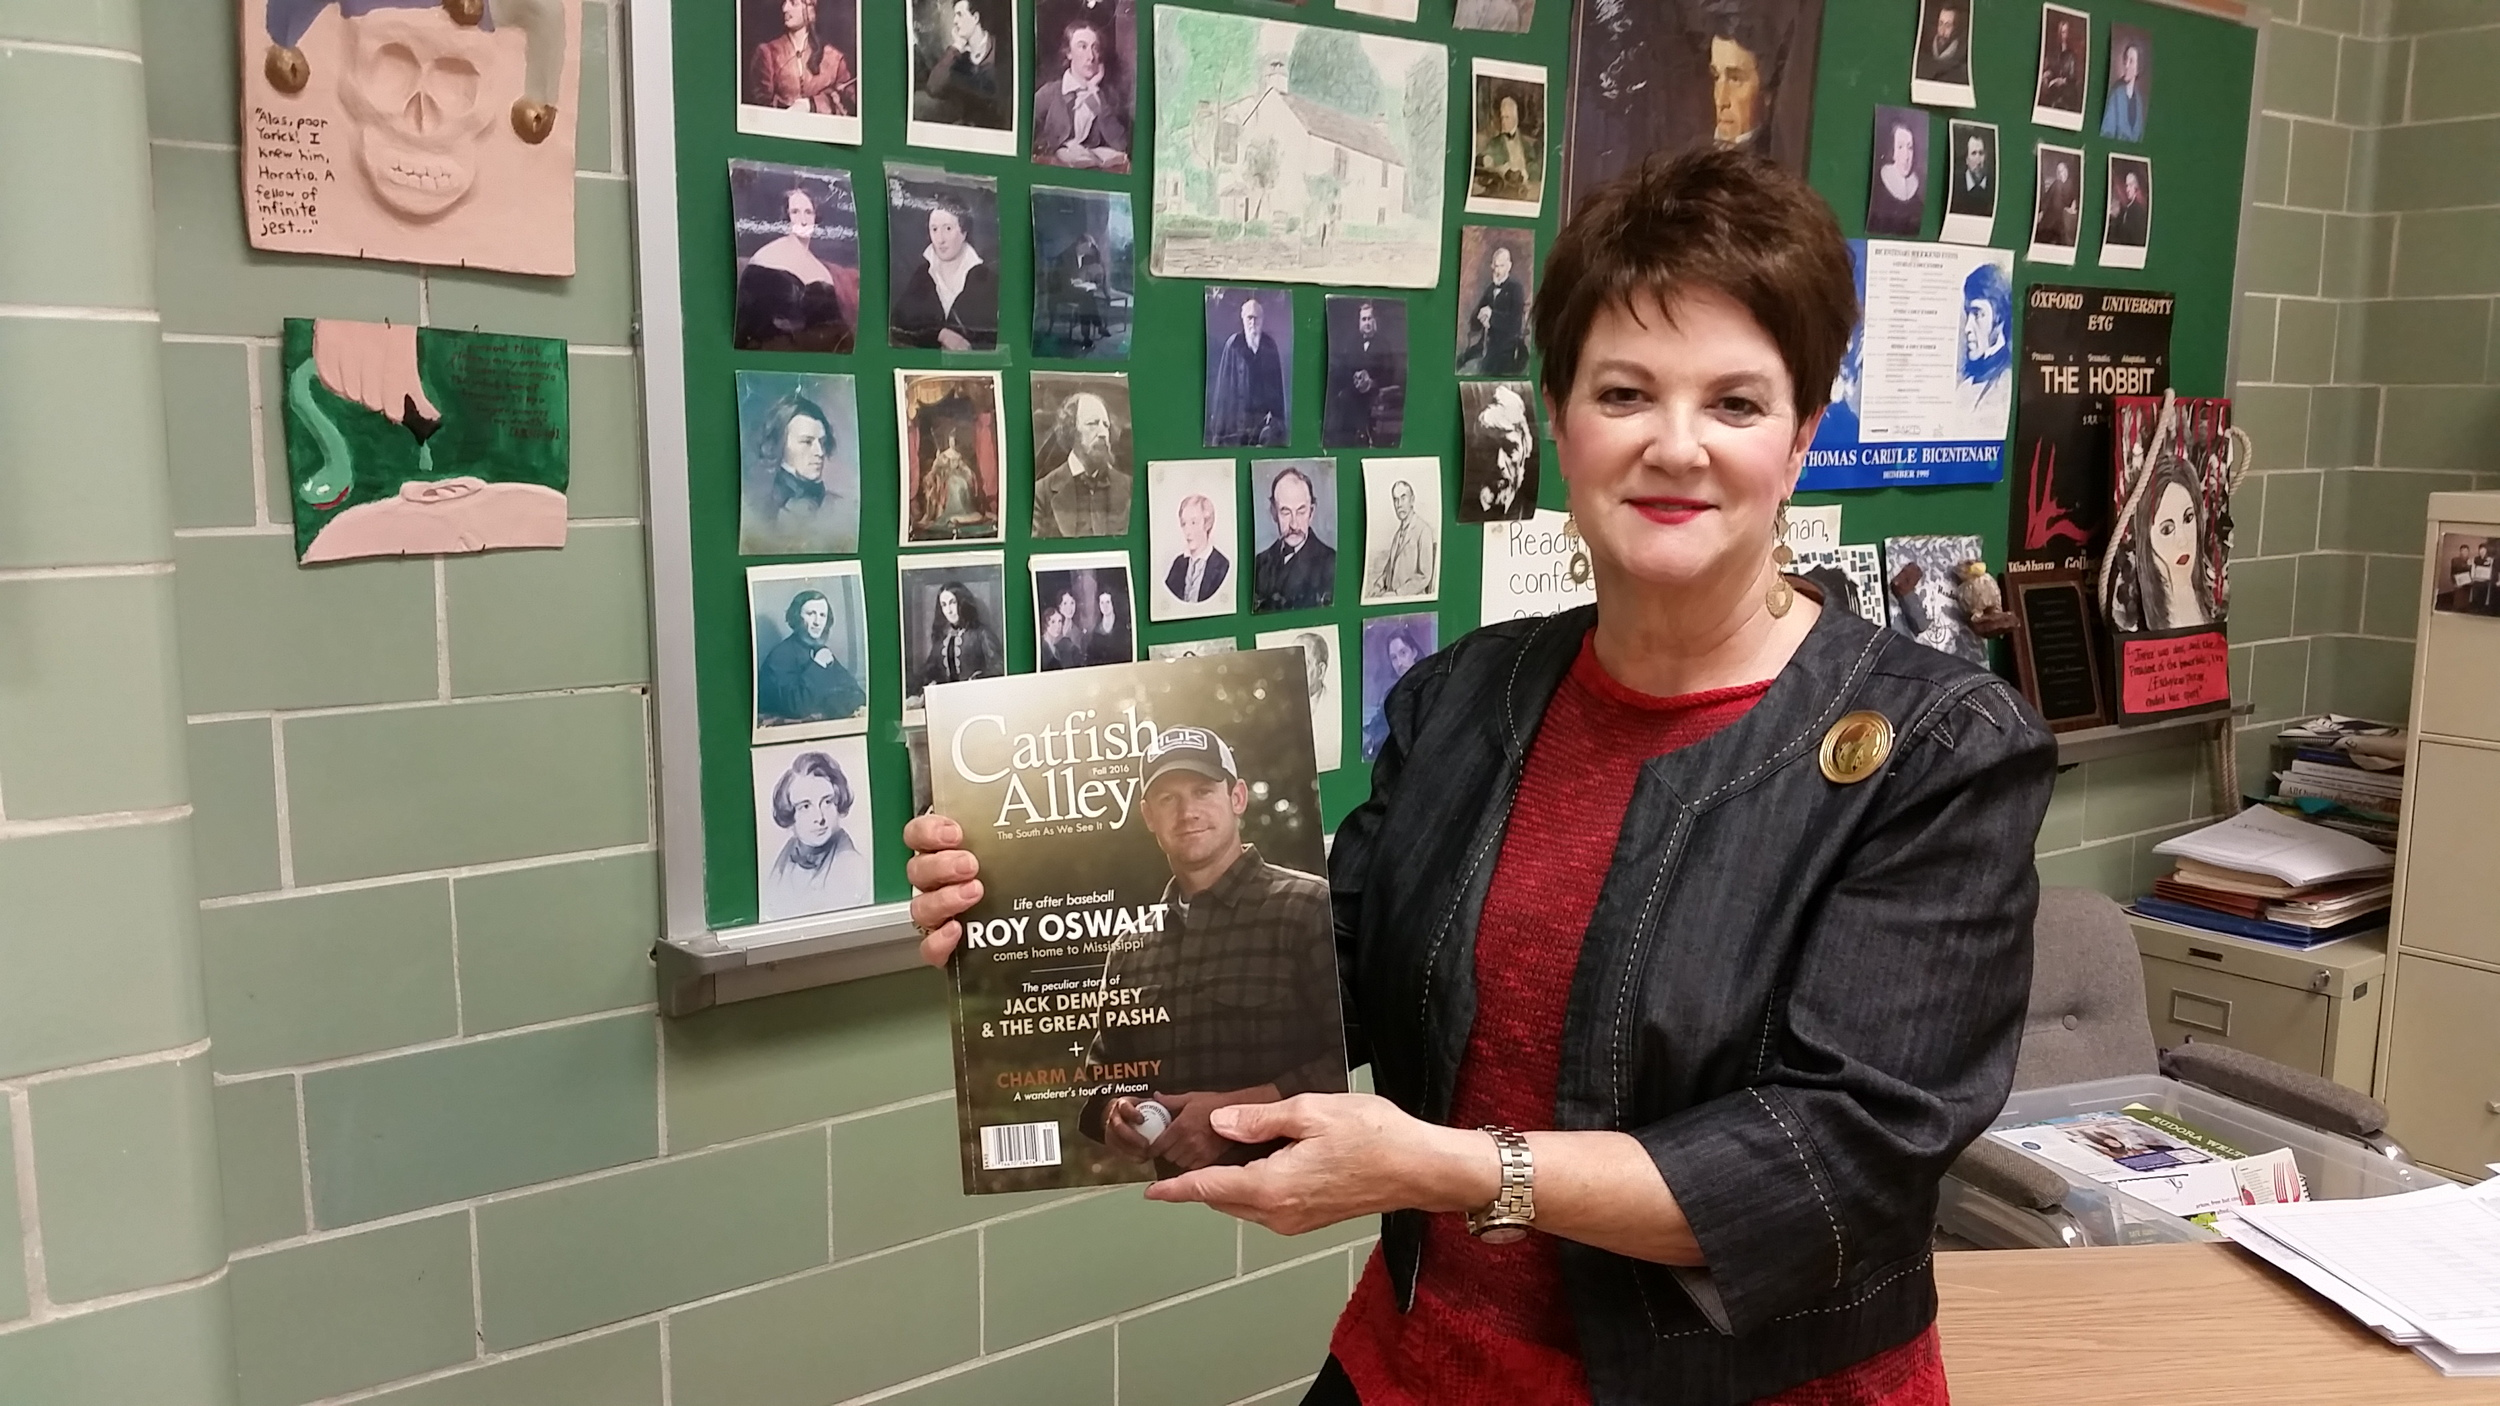 MSMS English faculty member Emma Richardson holds the latest copy of Catfish Alley magazine in which she is featured.